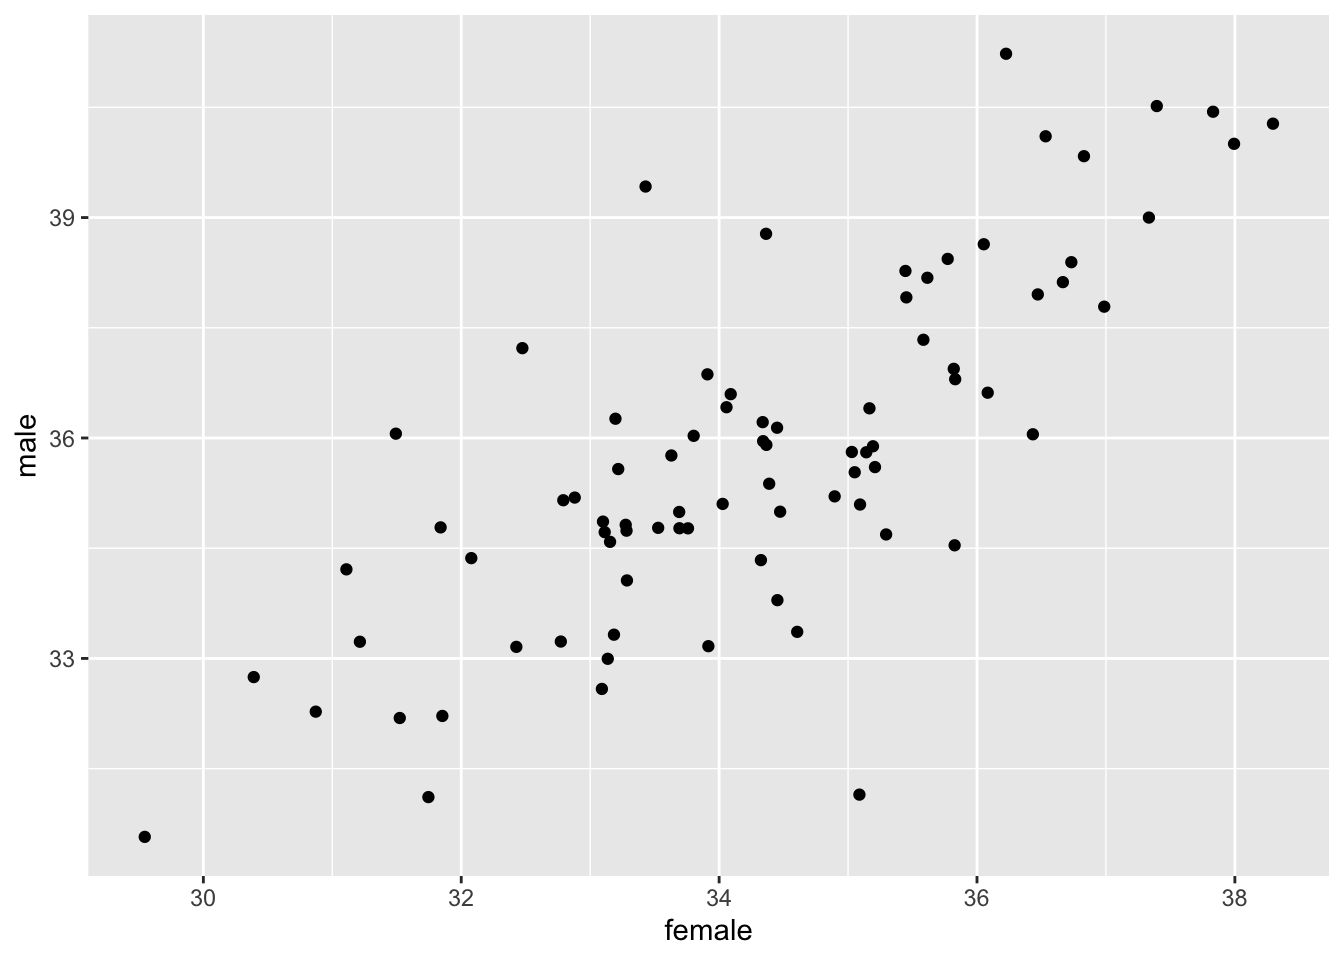 chapter 3 data visualization with ggplot2